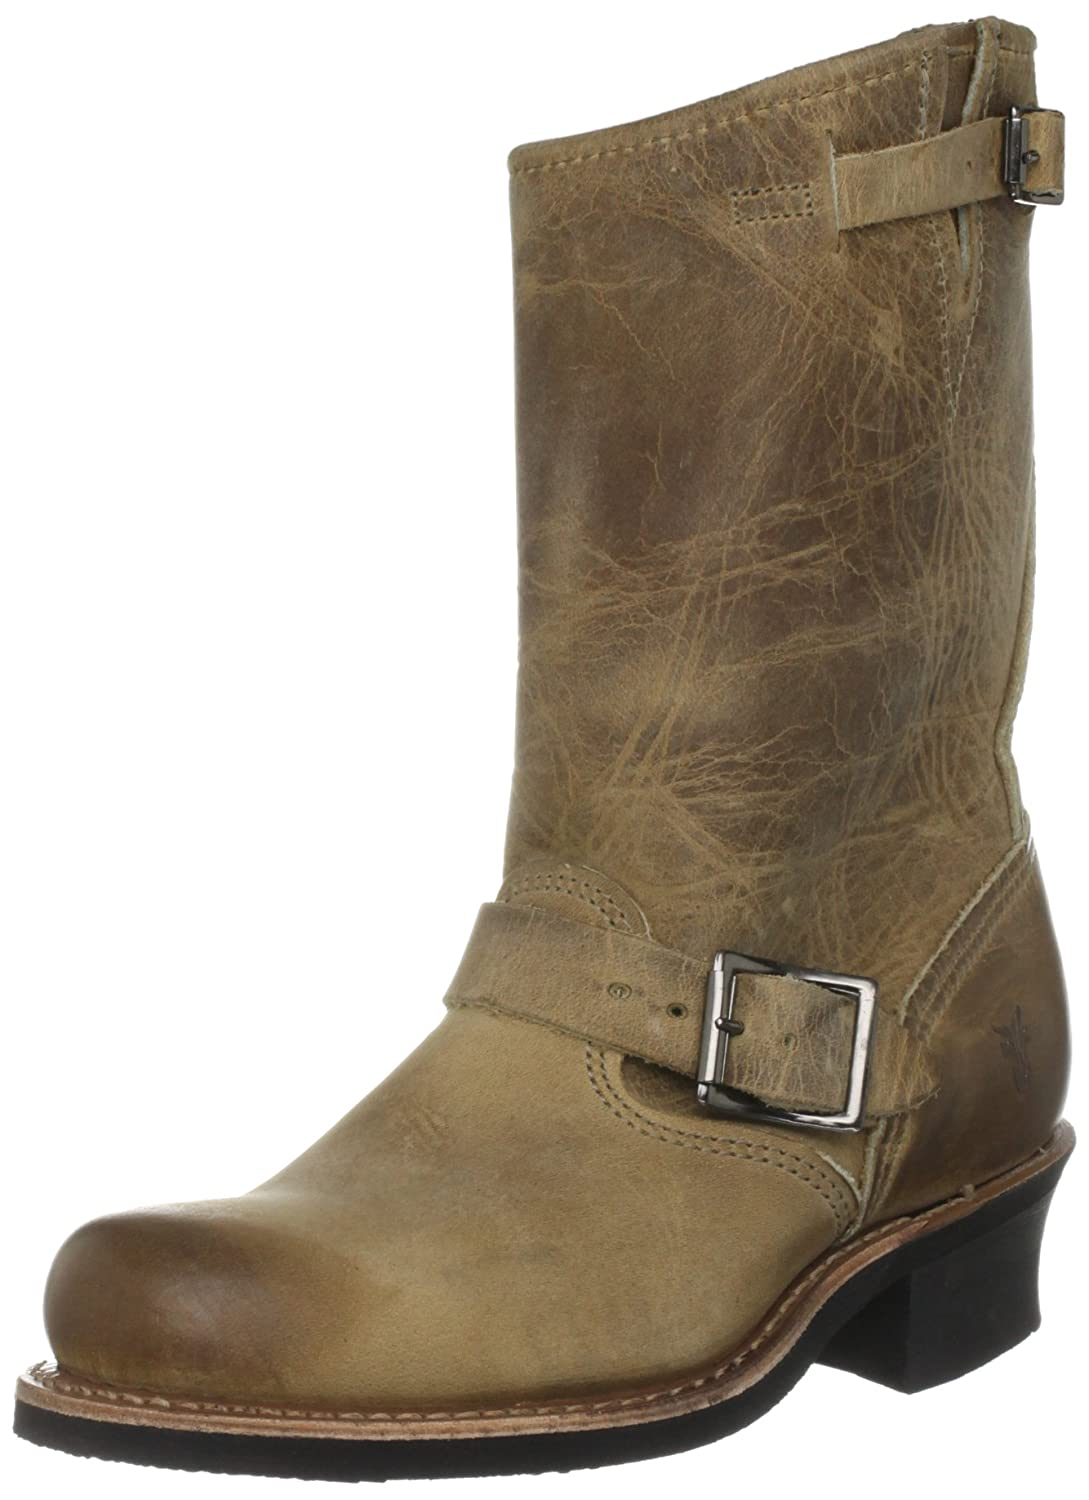 FRYE Women's Engineer 12R Boot B0044PPYVM 6.5 B(M) US|Sand